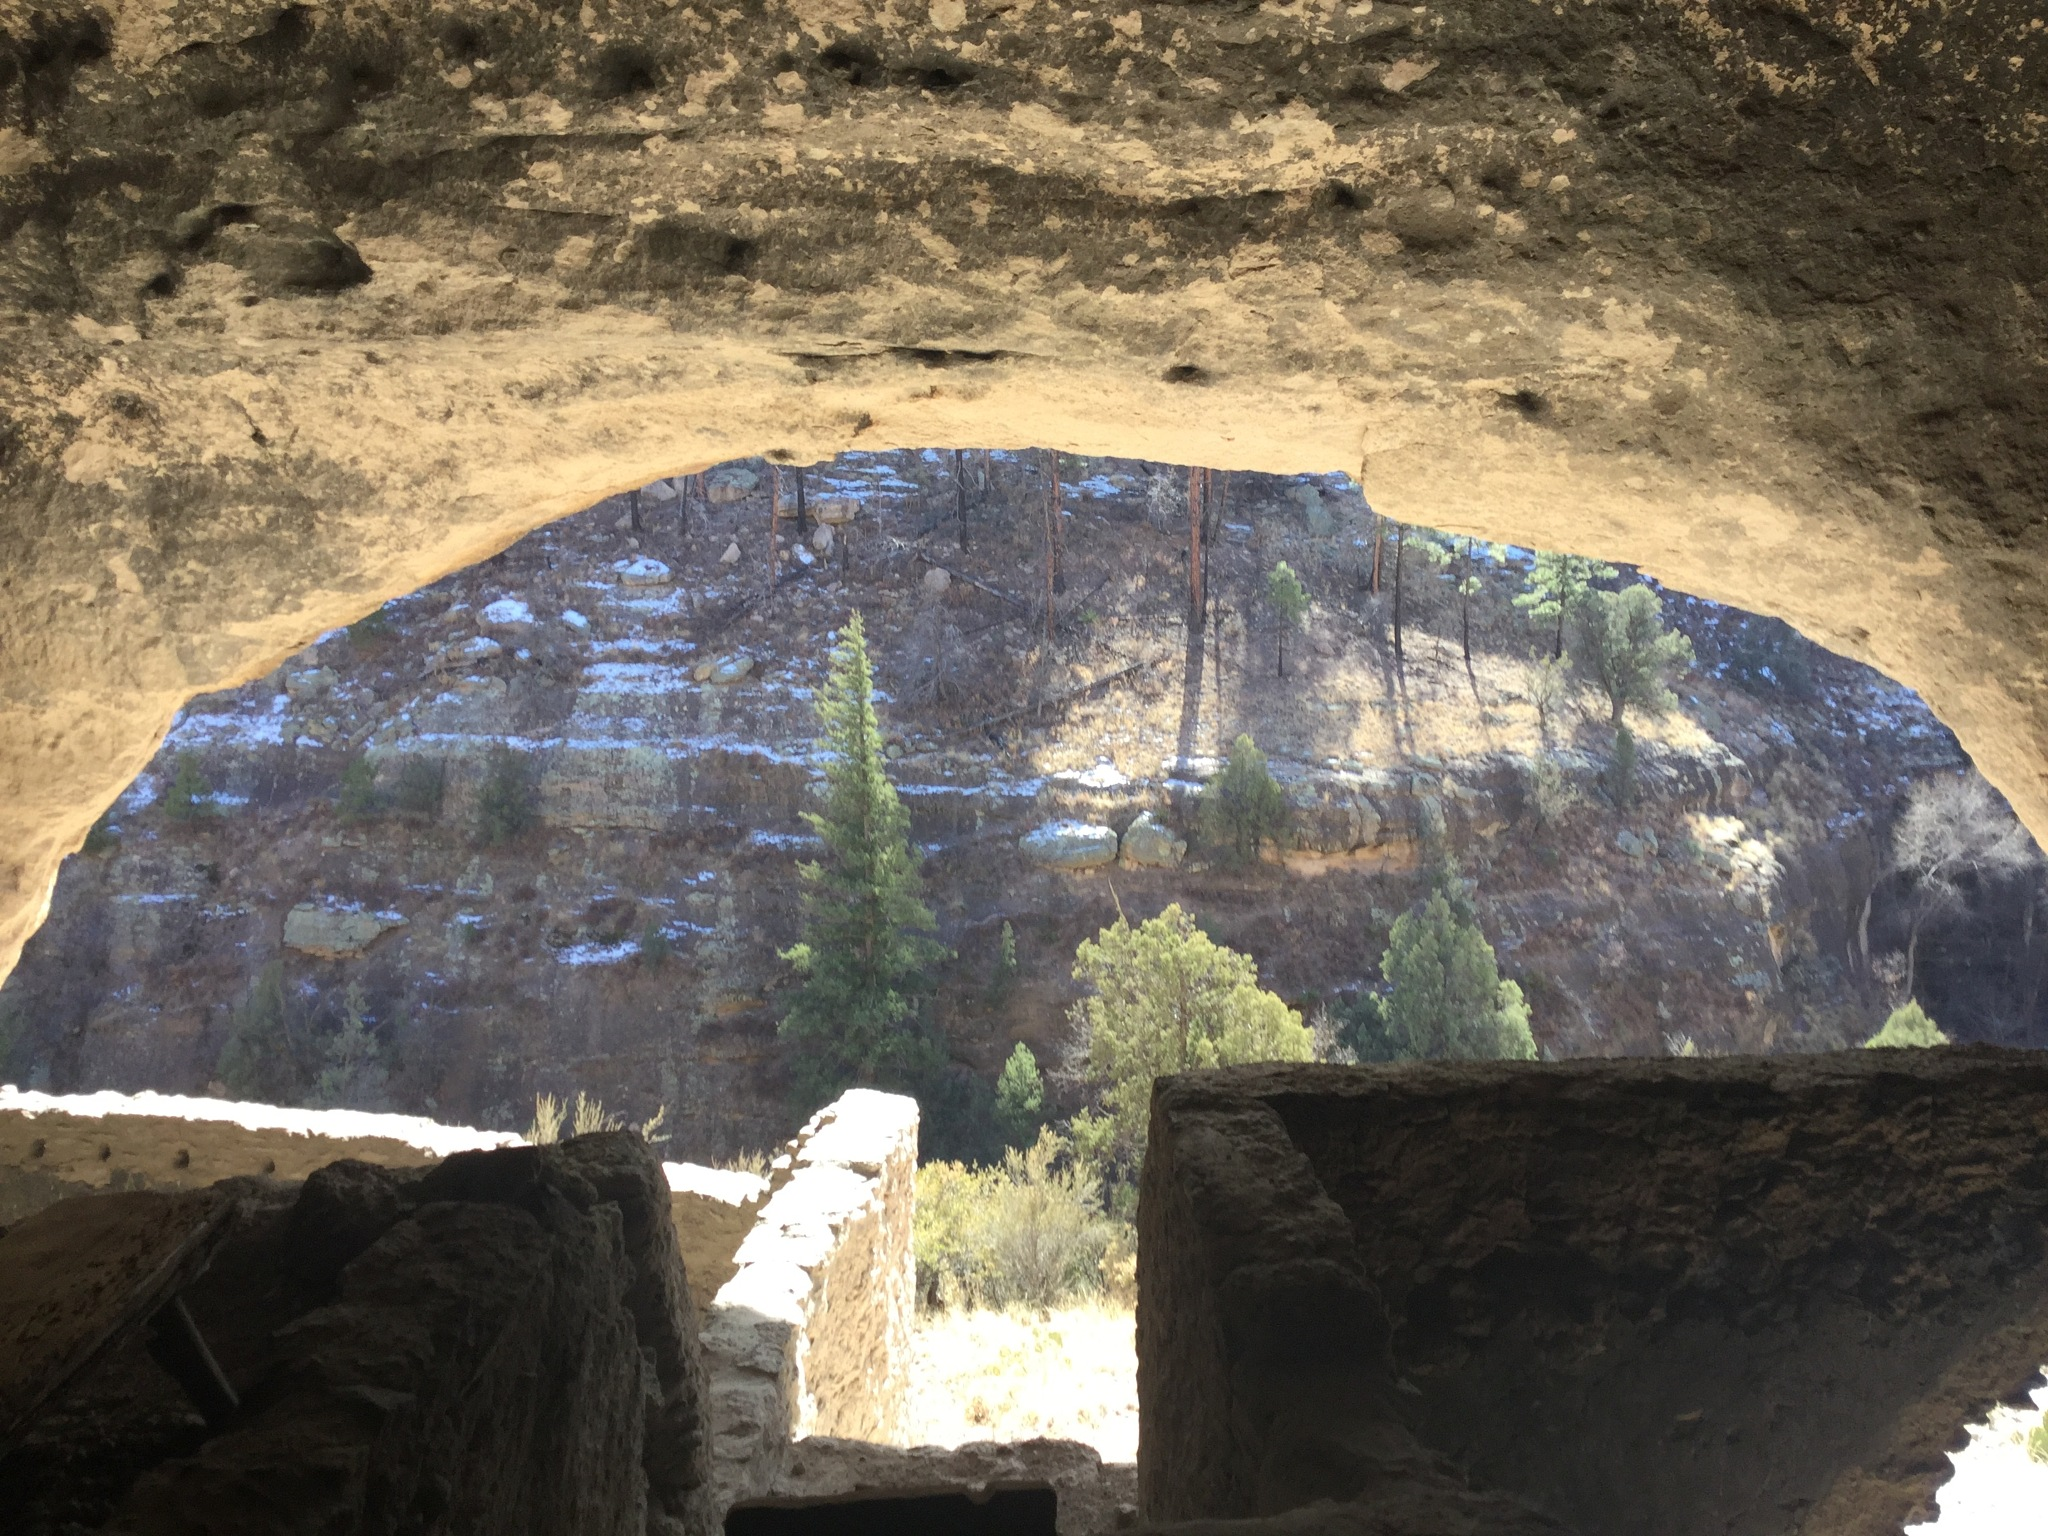 Gila Cliff Dwellings 2 by dulcemuse